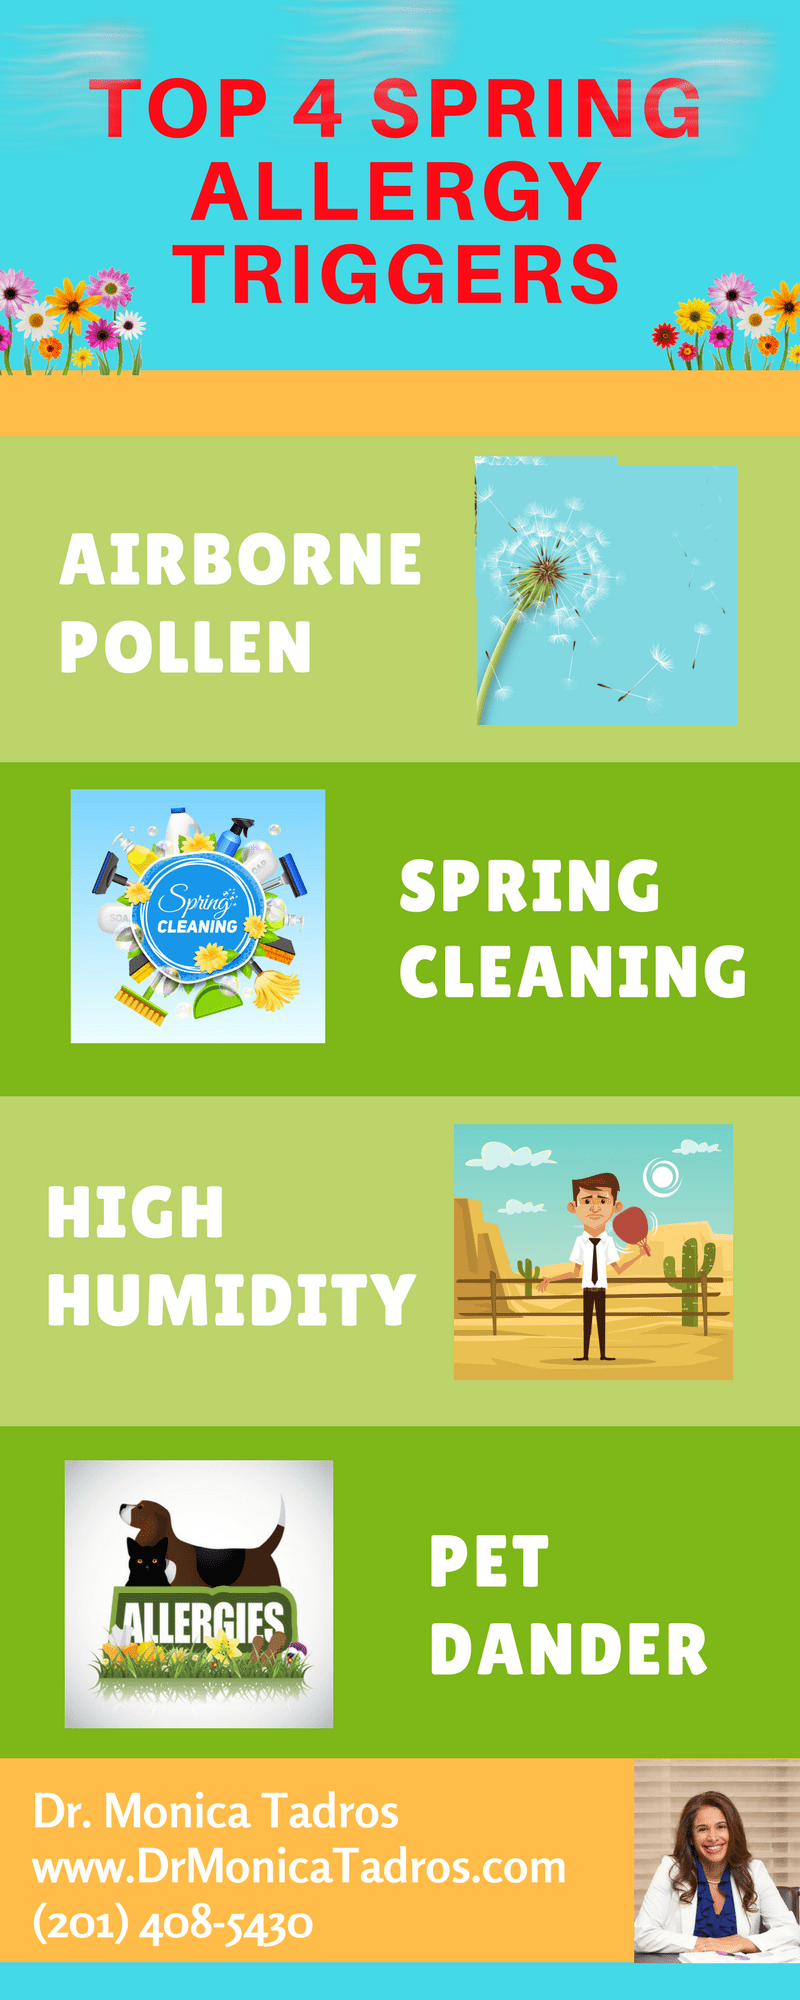 top-4-spring-allergy-triggers-infographic-dr-tadros-full